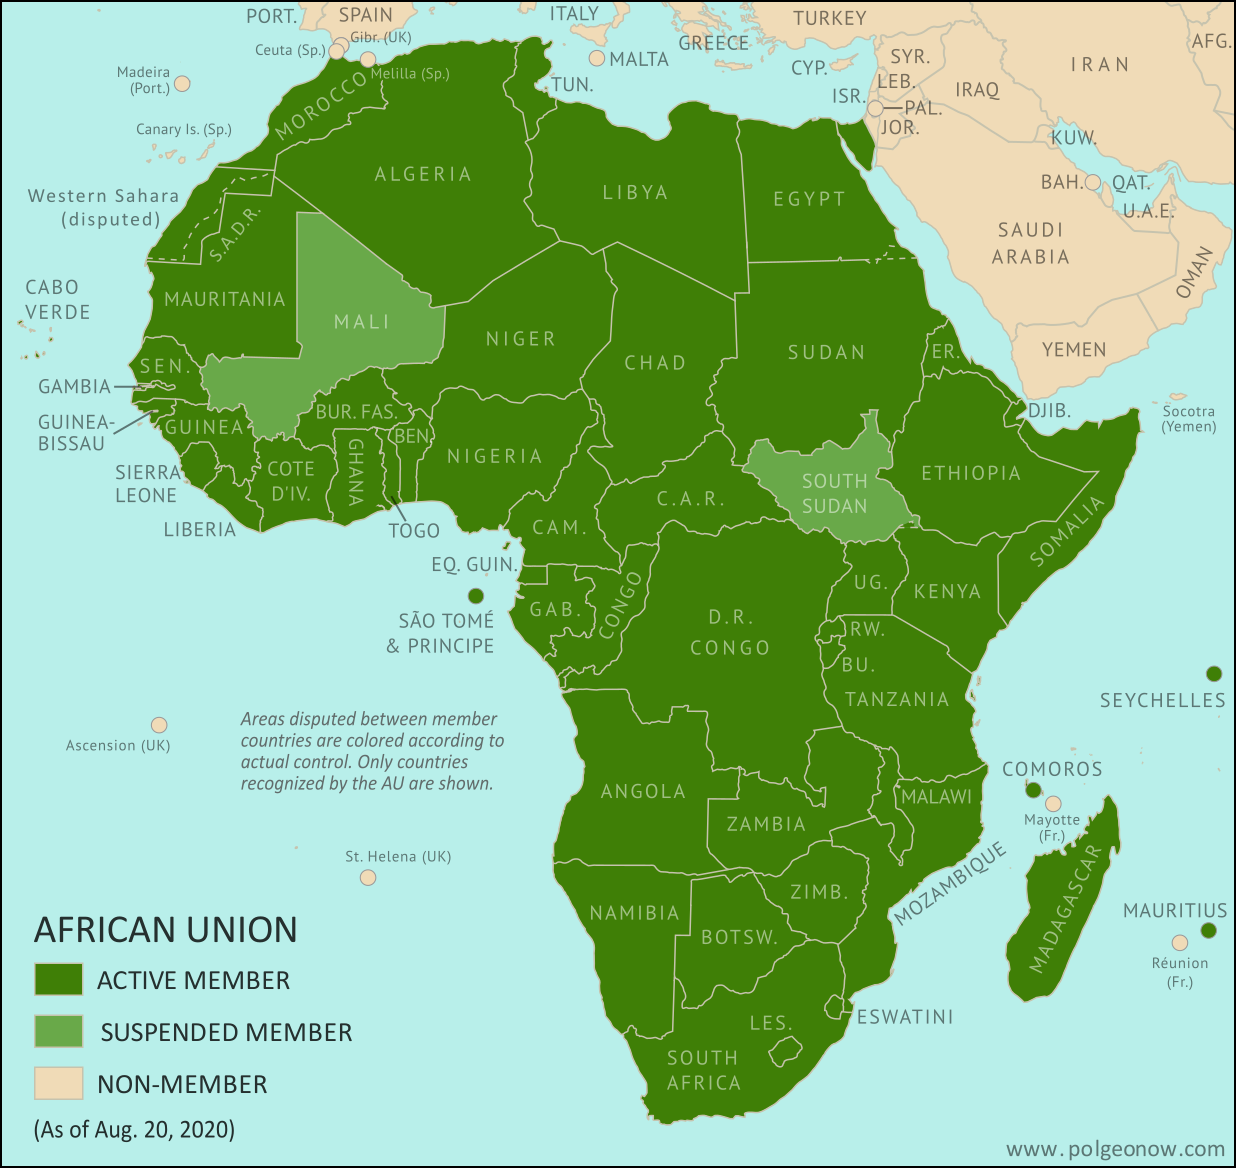 African Union: Map of Africa showing which countries are in the African Union in 2020, including active and suspended member countries and non-member territories. Updated for the September 2019 reinstatement of Sudan, the June 2020 suspension of South Sudan, and the August 2020 suspension of Mali (colorblind accessible).